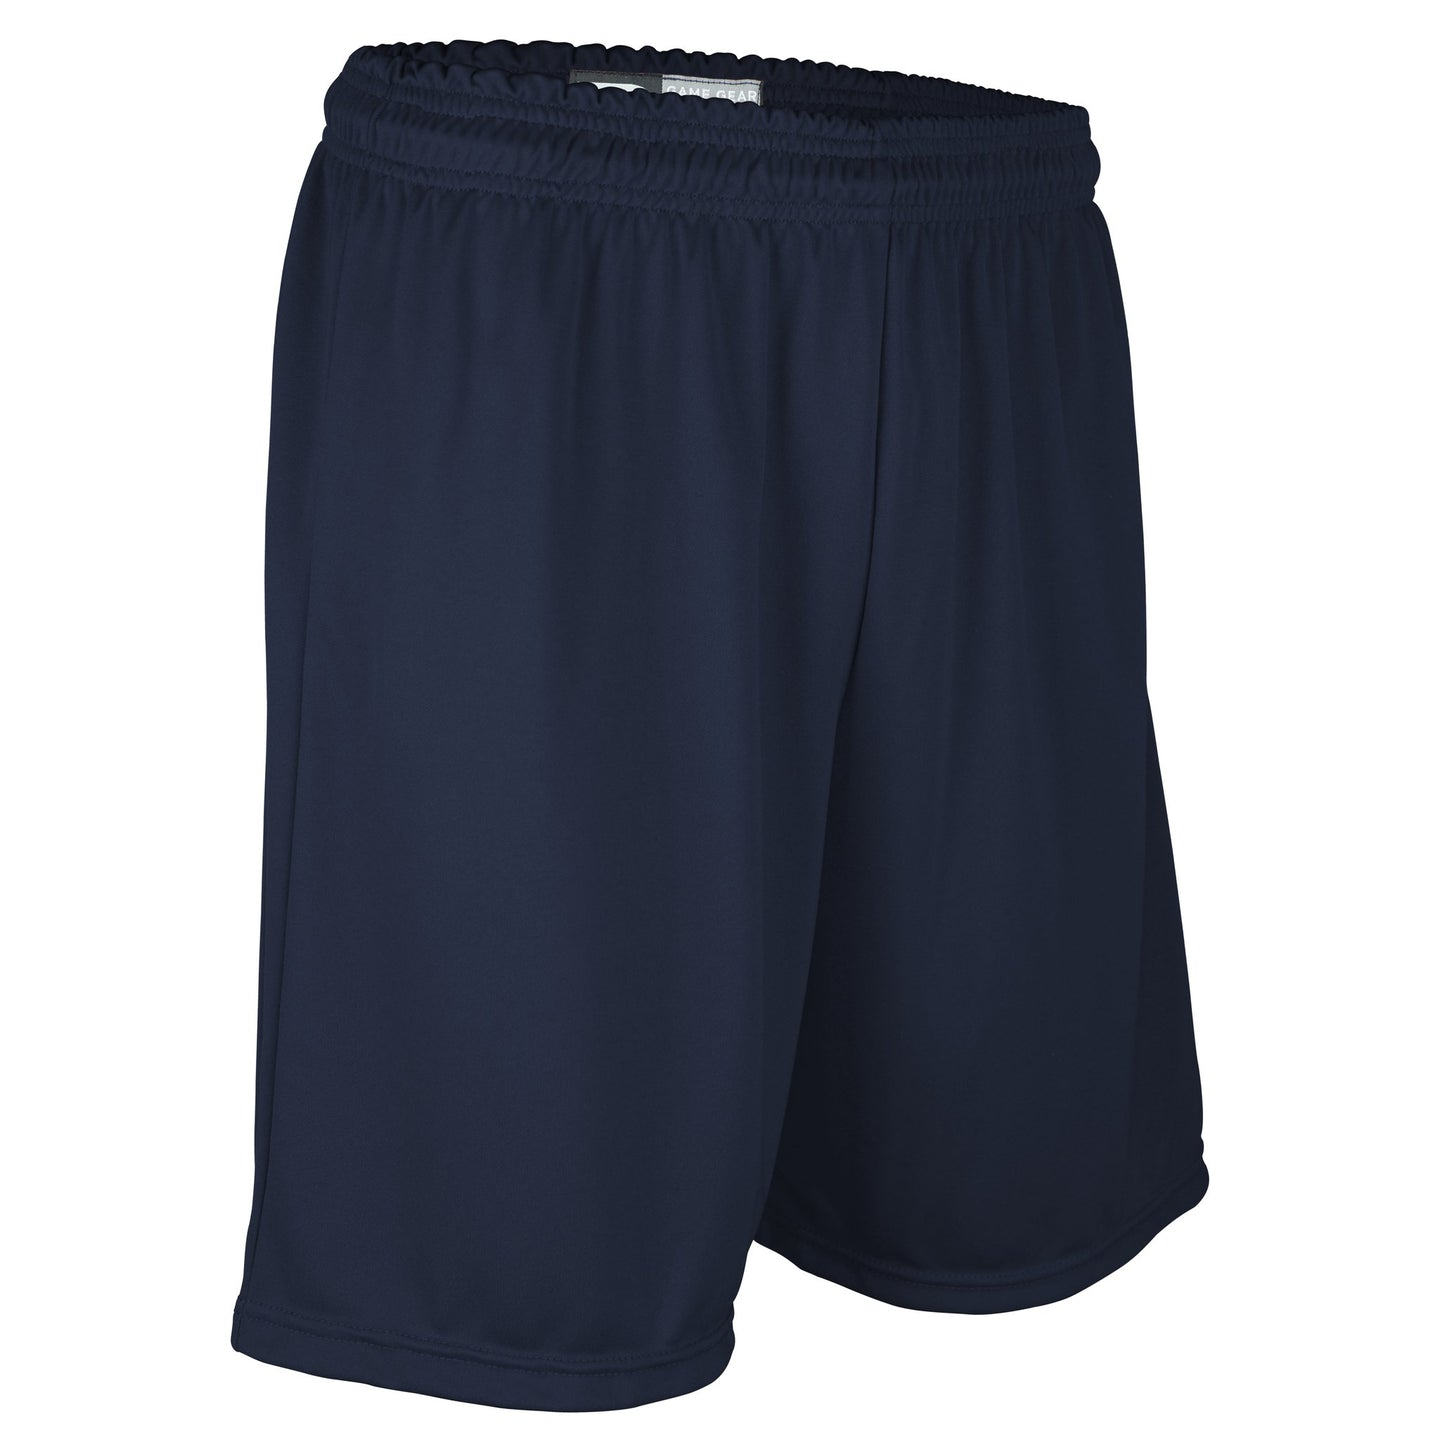 Youth Solid Navy 7 Inch Short